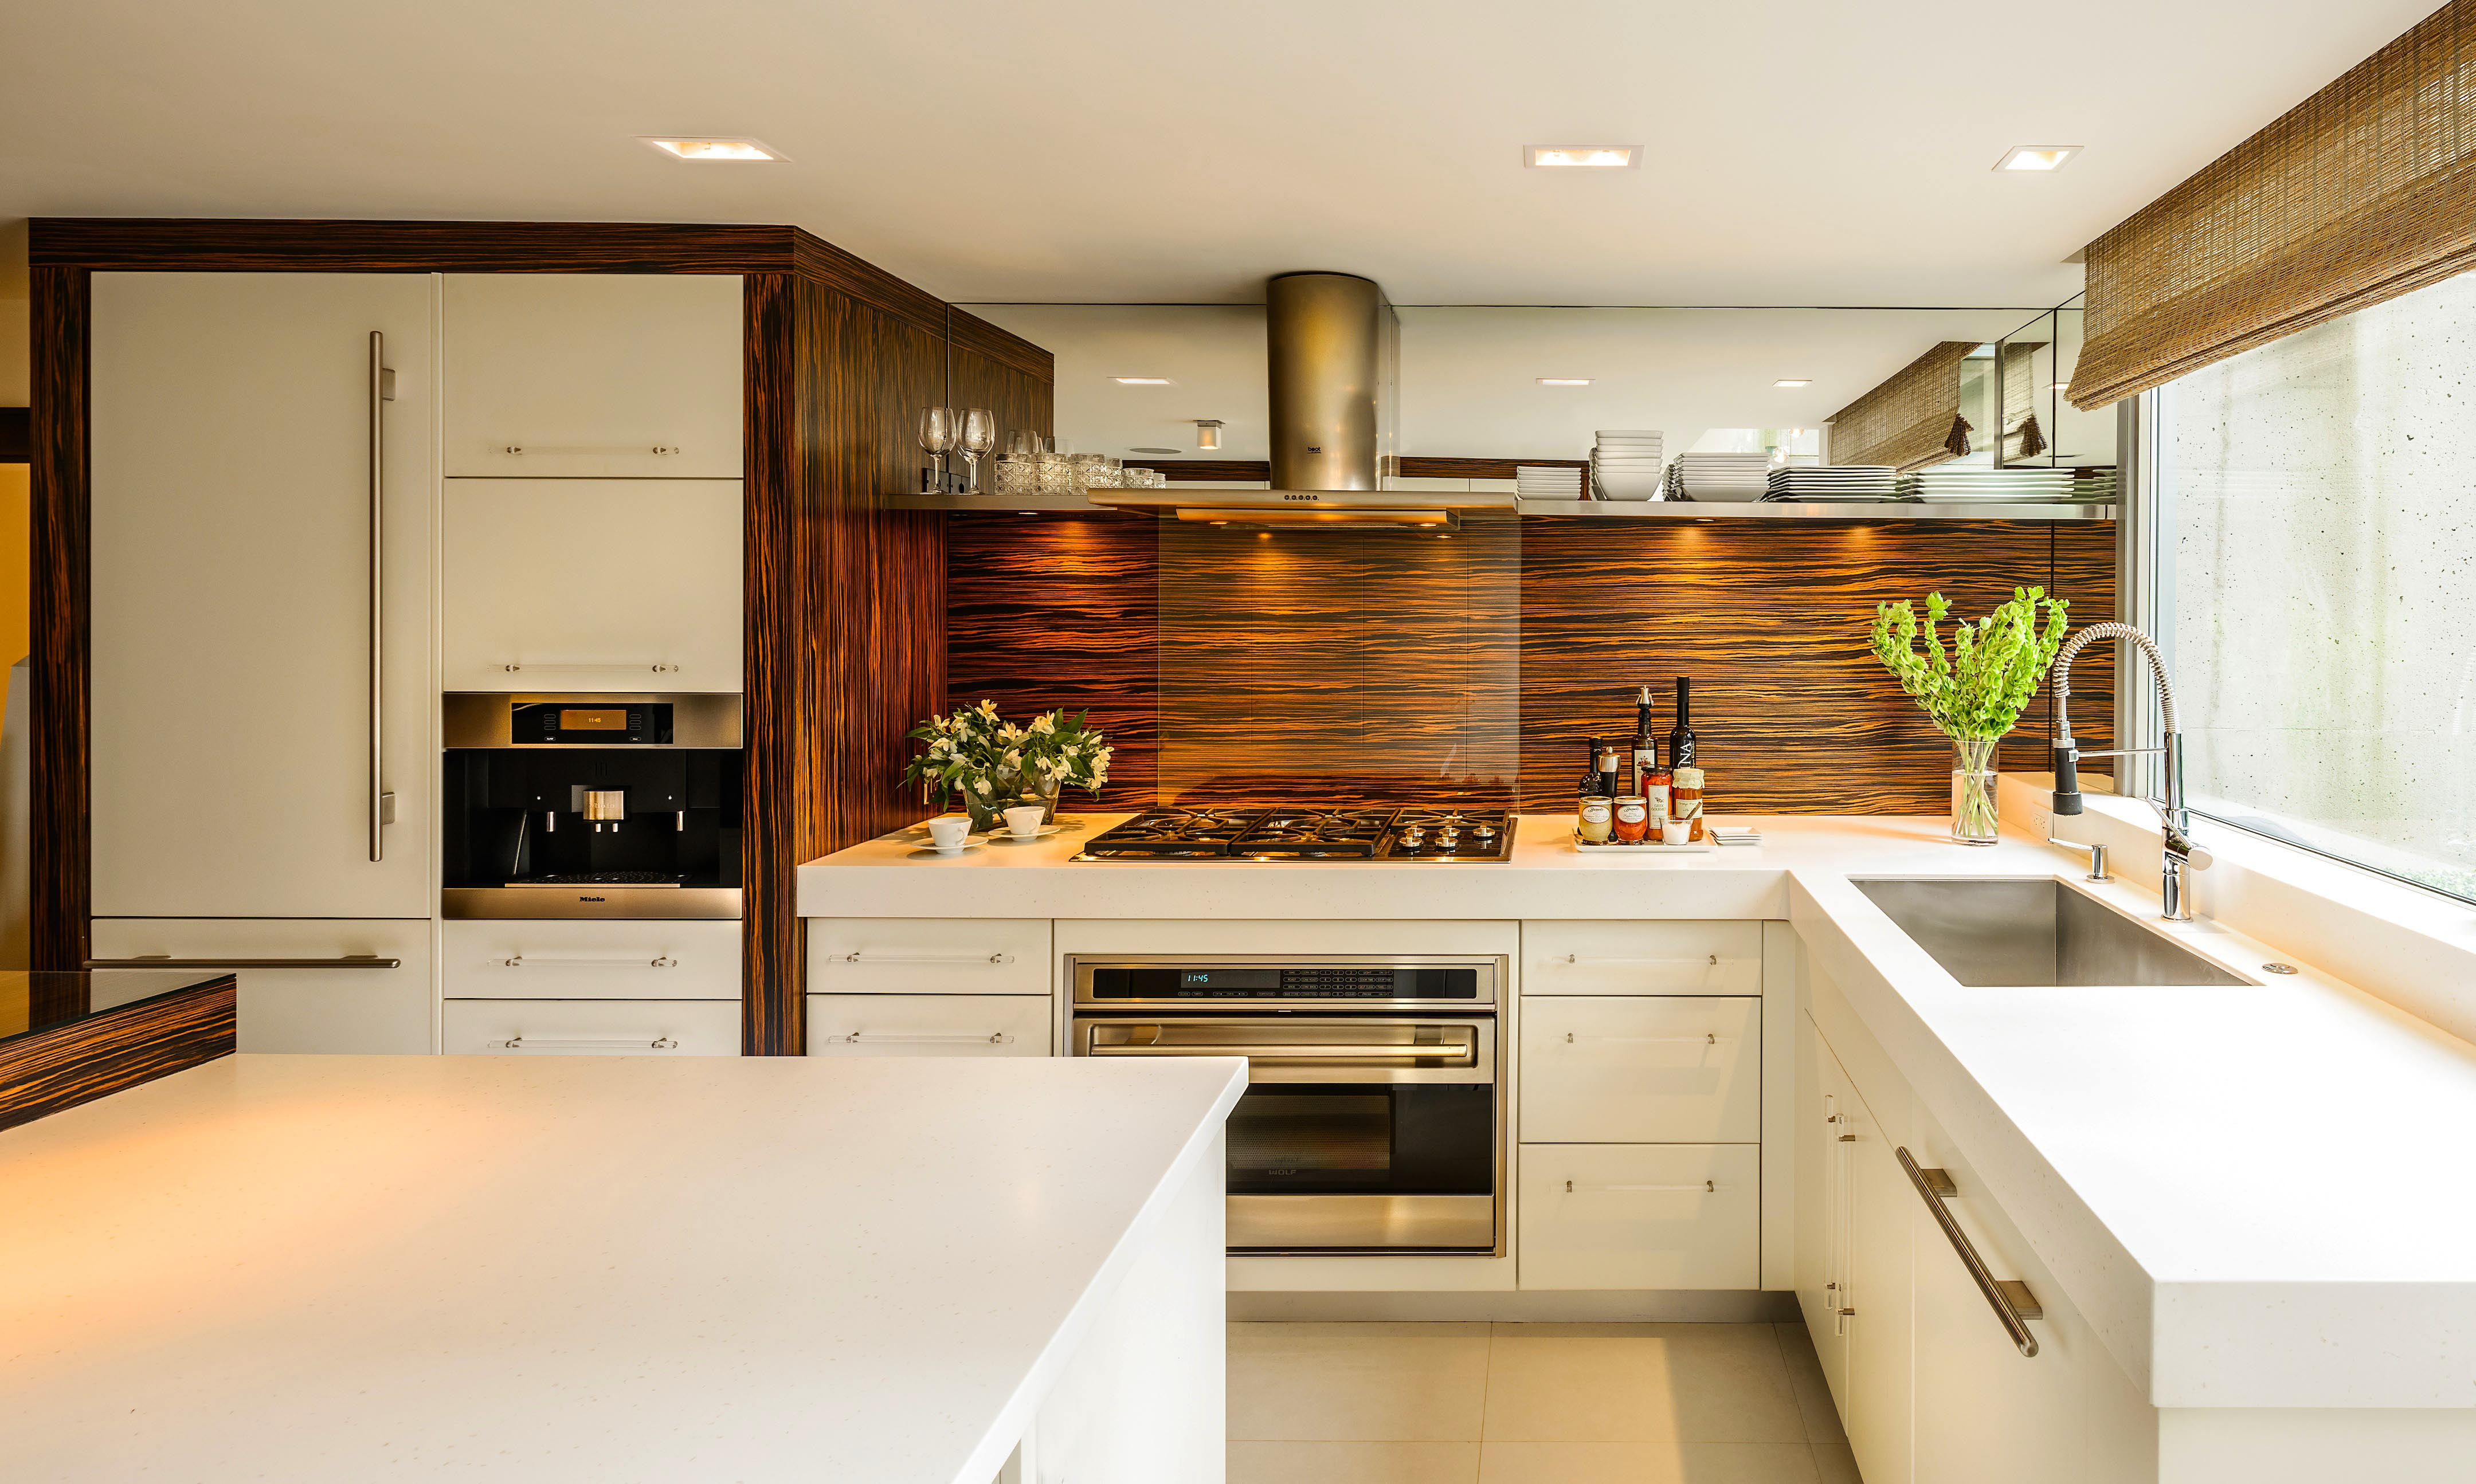 contemporary-kitchen-designs-ideas-for-new-modern-kitchen-cabinet-designs-built-in-oven-and-large-modern-sink-and-wooden-backsplash-designs